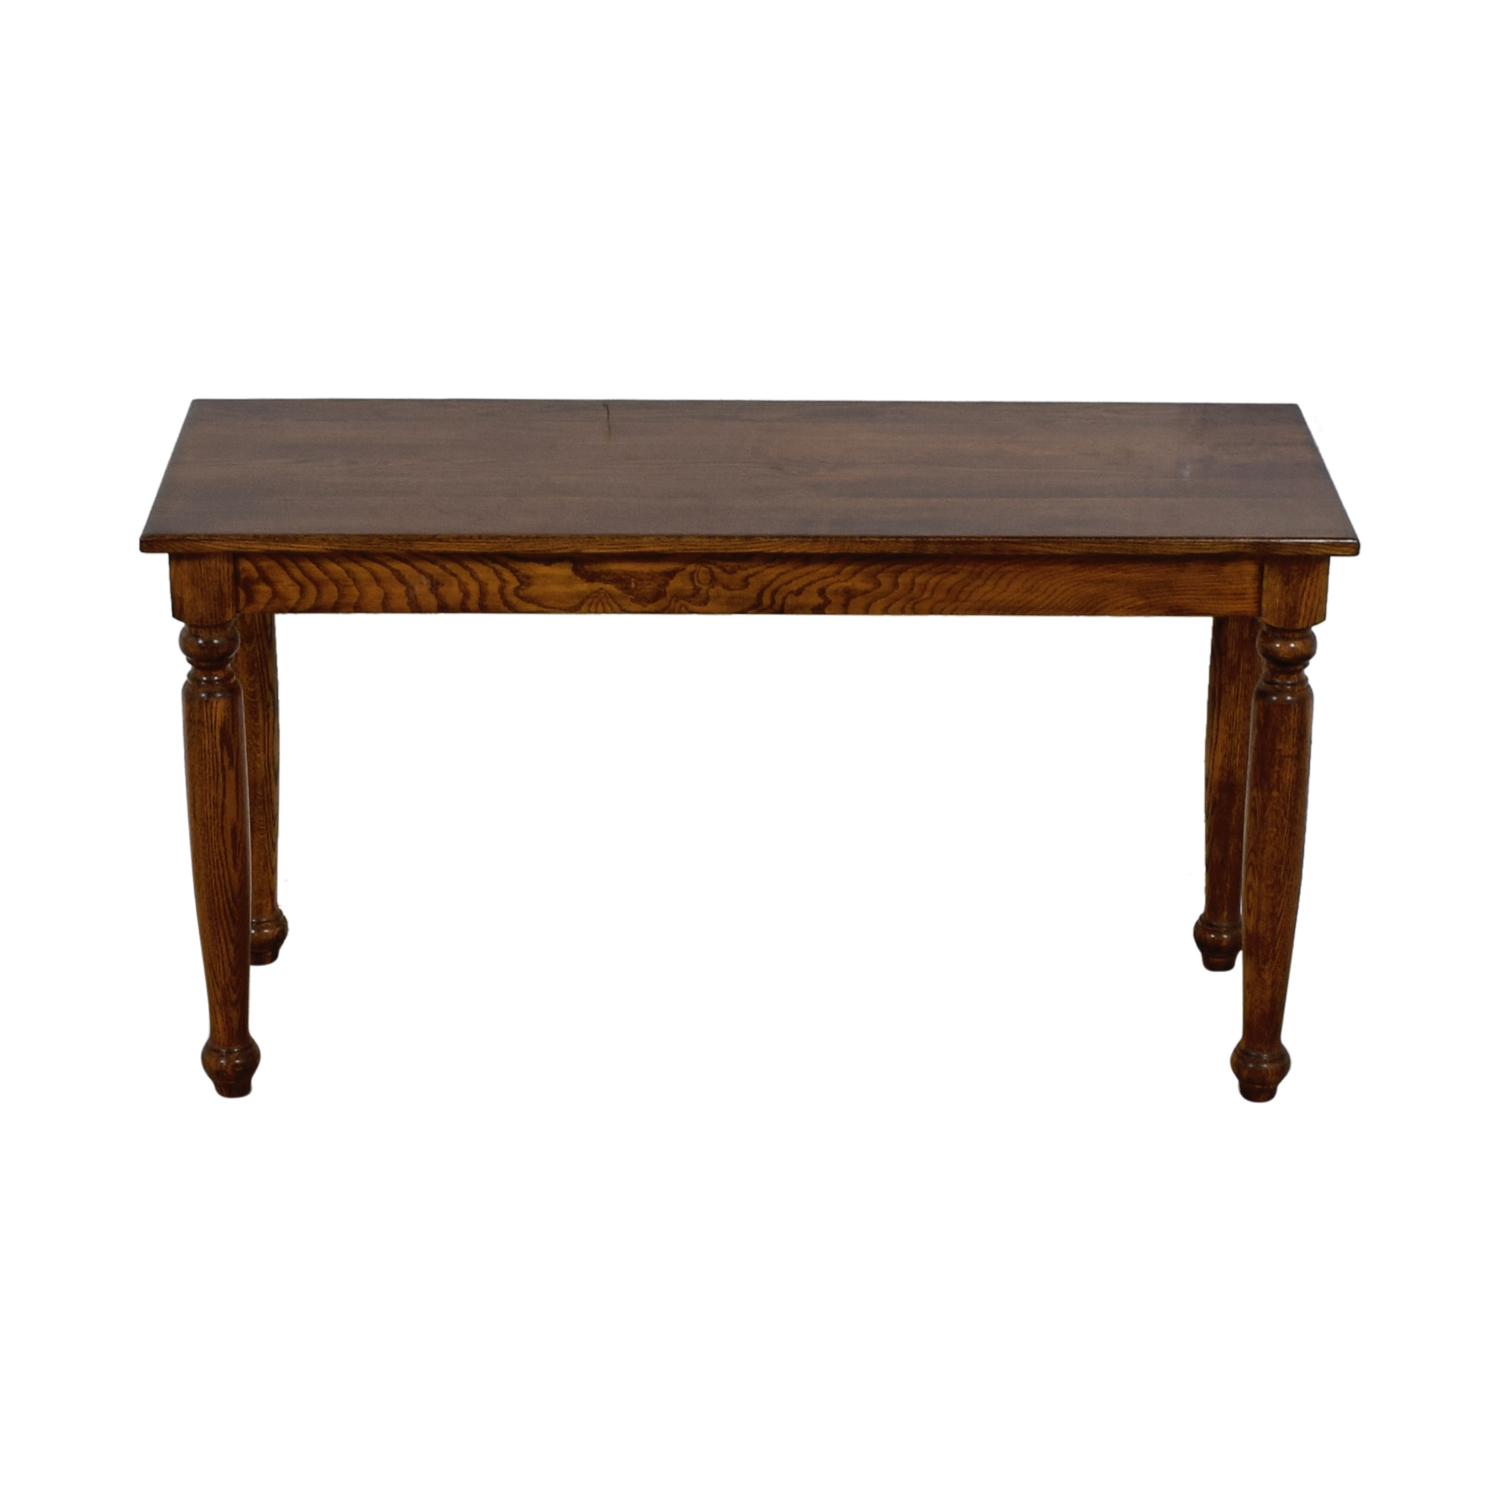 Vintage Wood Foyer Console Table second hand